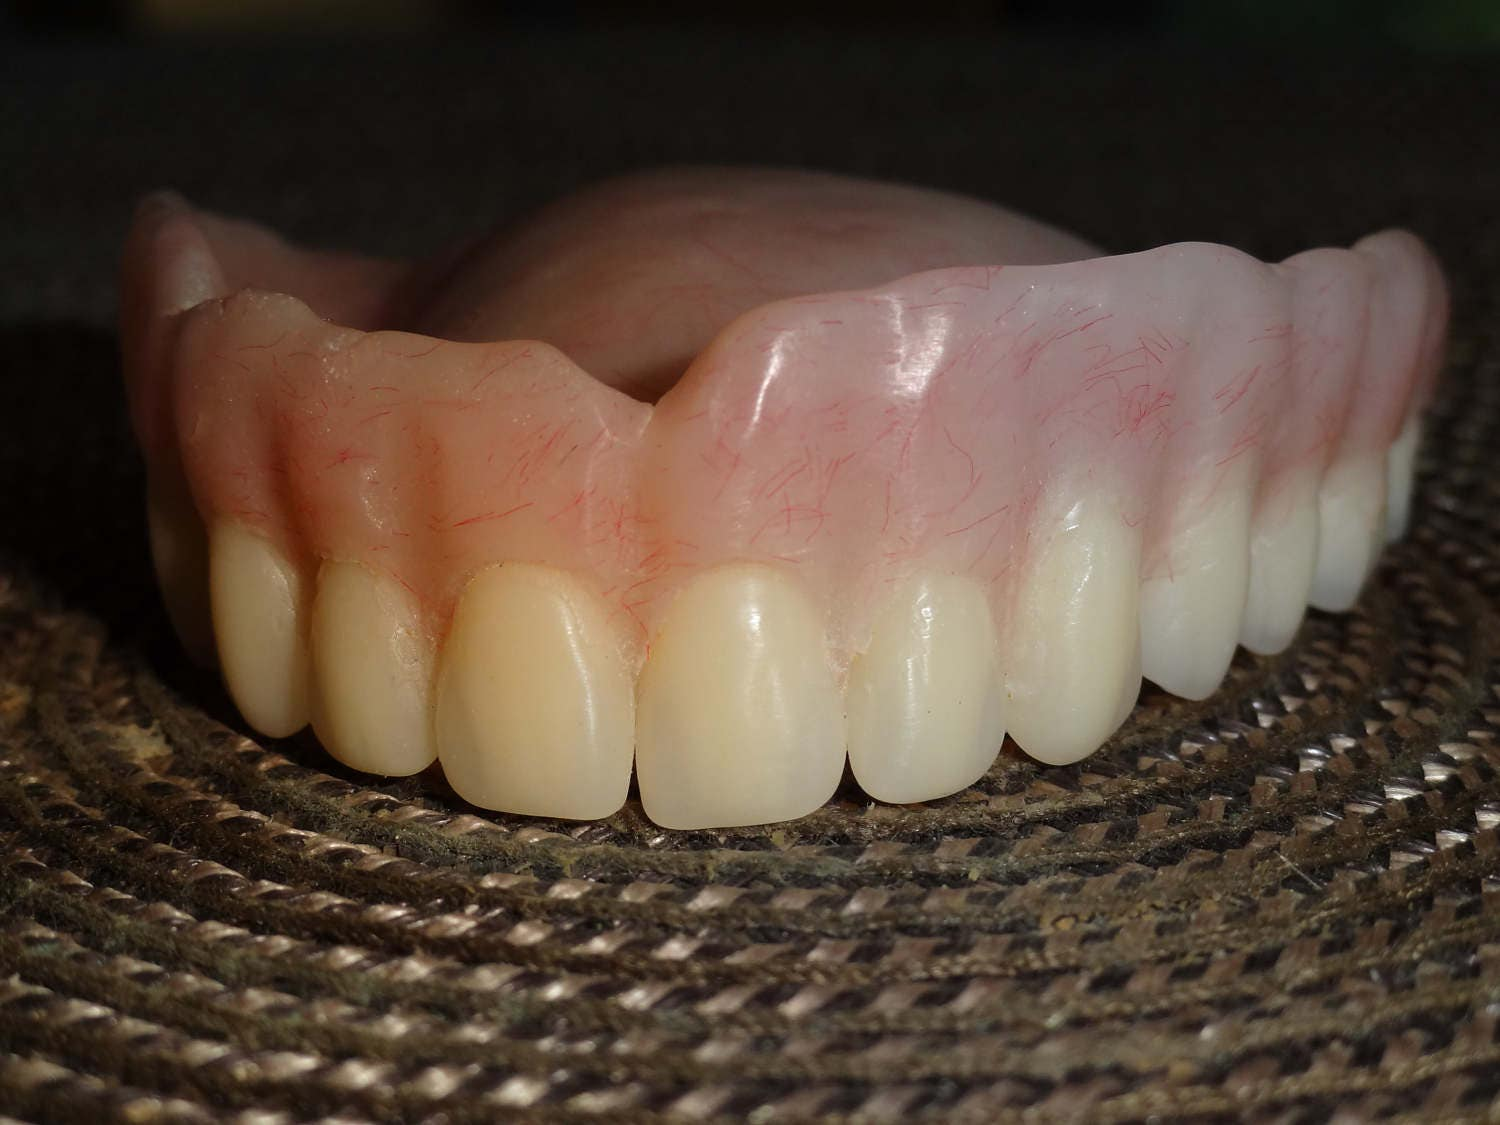 Description. FULL UPPER DENTURE.